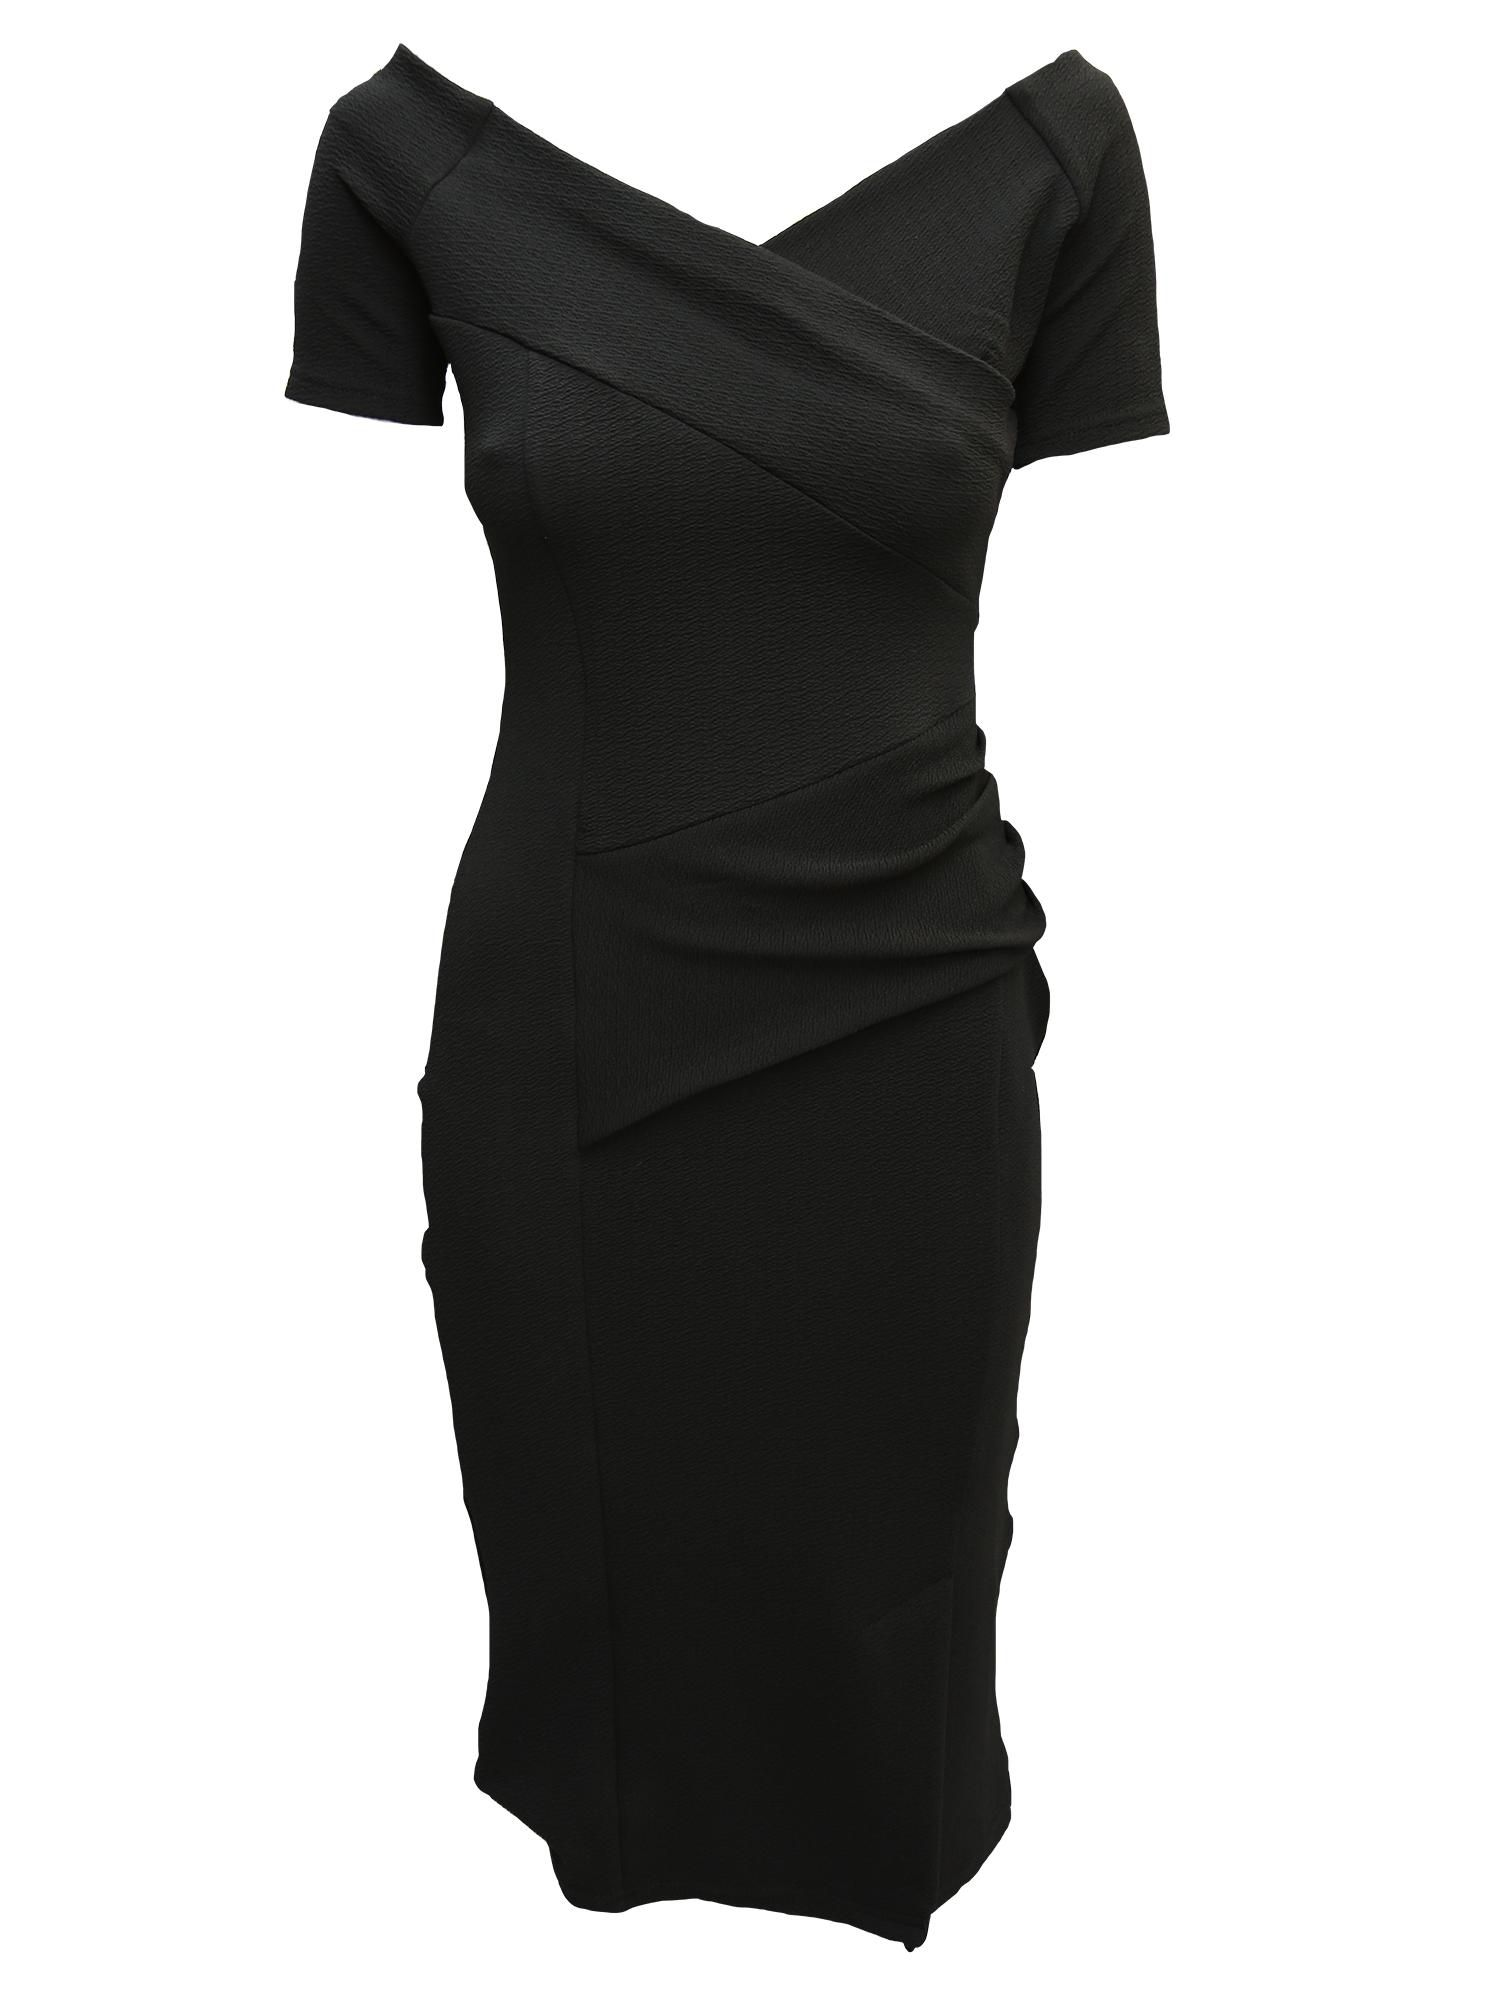 Feverfish Off Shoulder Dress, Black